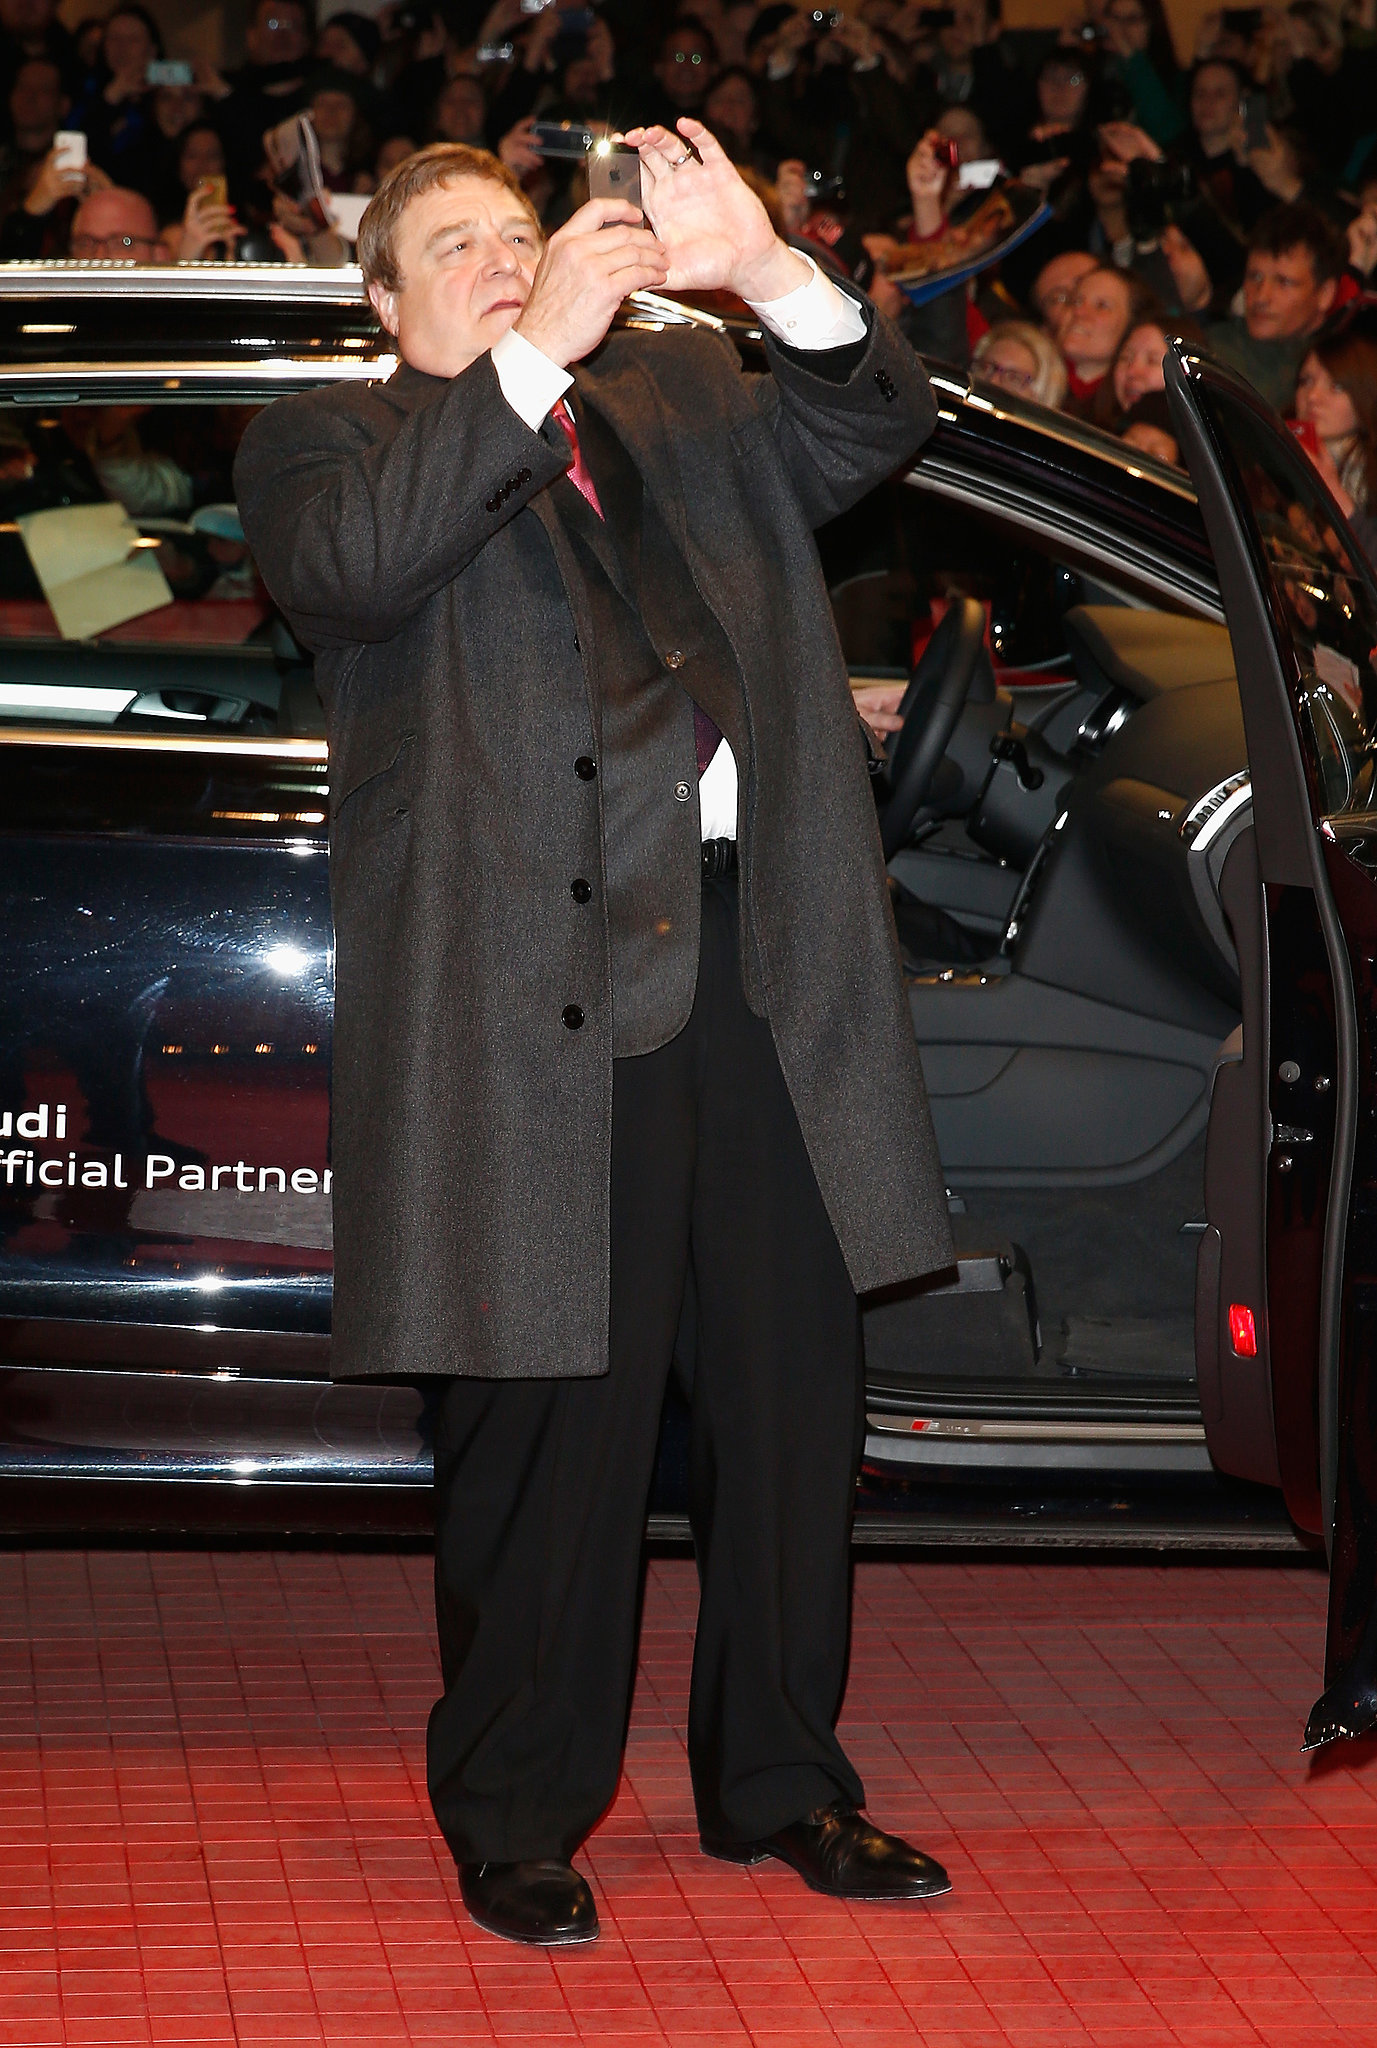 And at the premiere that night, John snapped lots of photos.